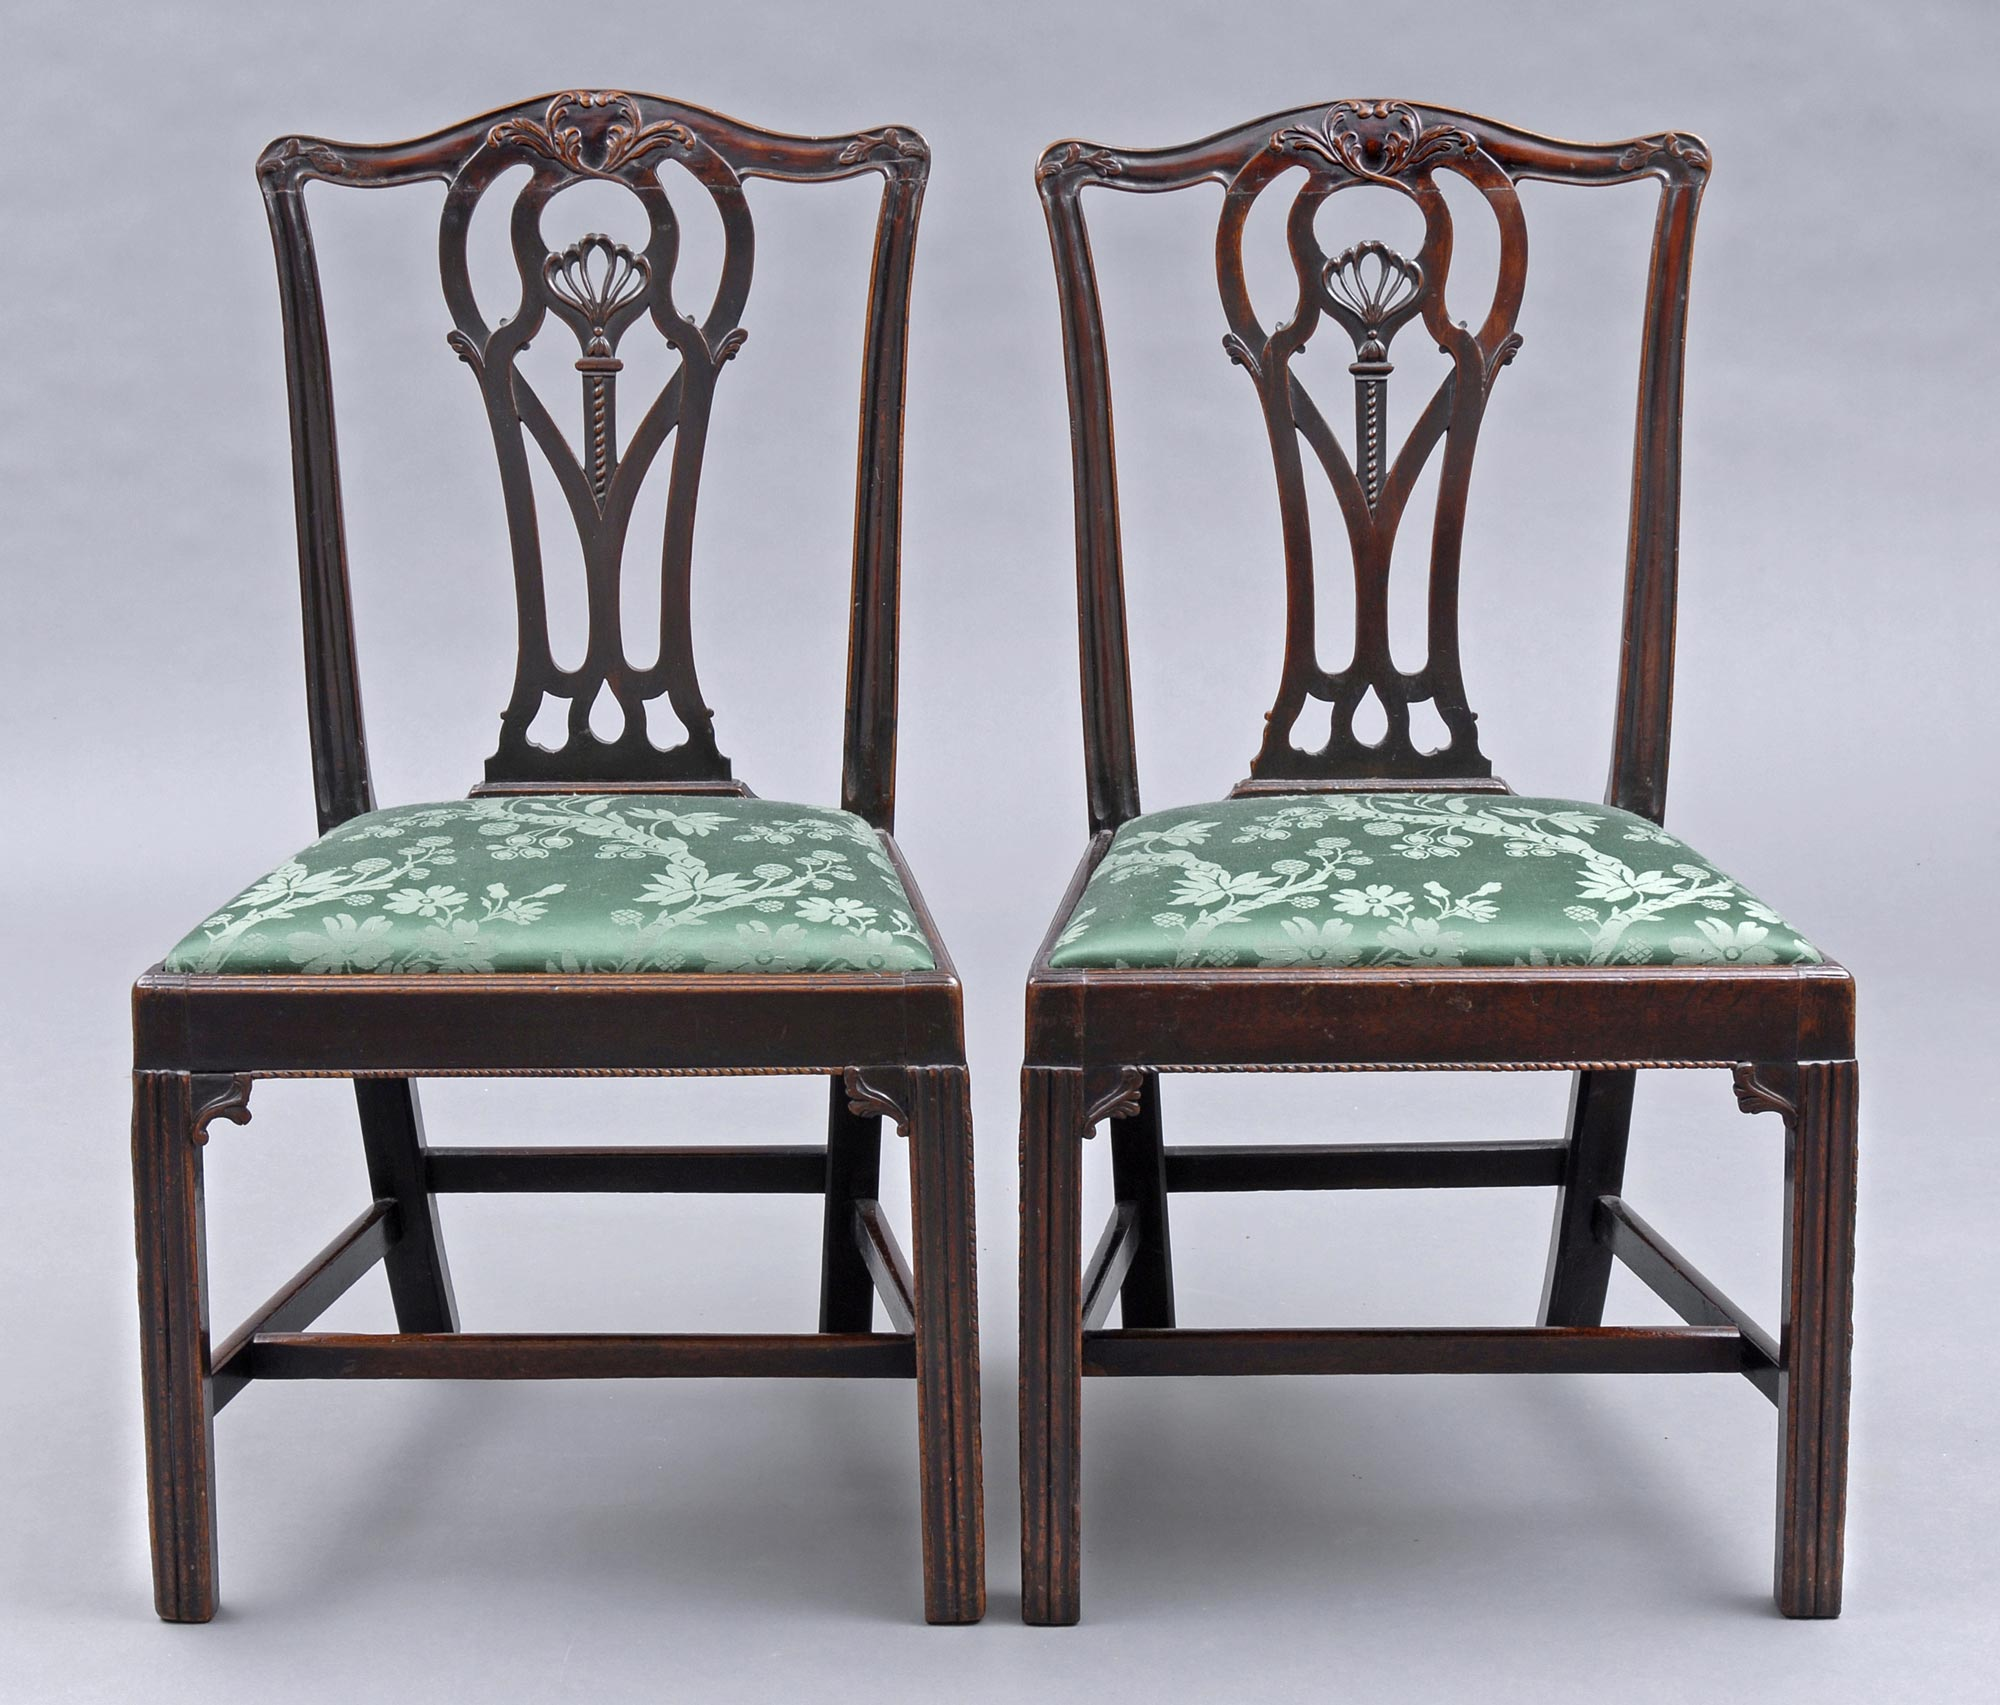 Pair Of English Period Chippendale Mahogany Side Chairs 18th Century